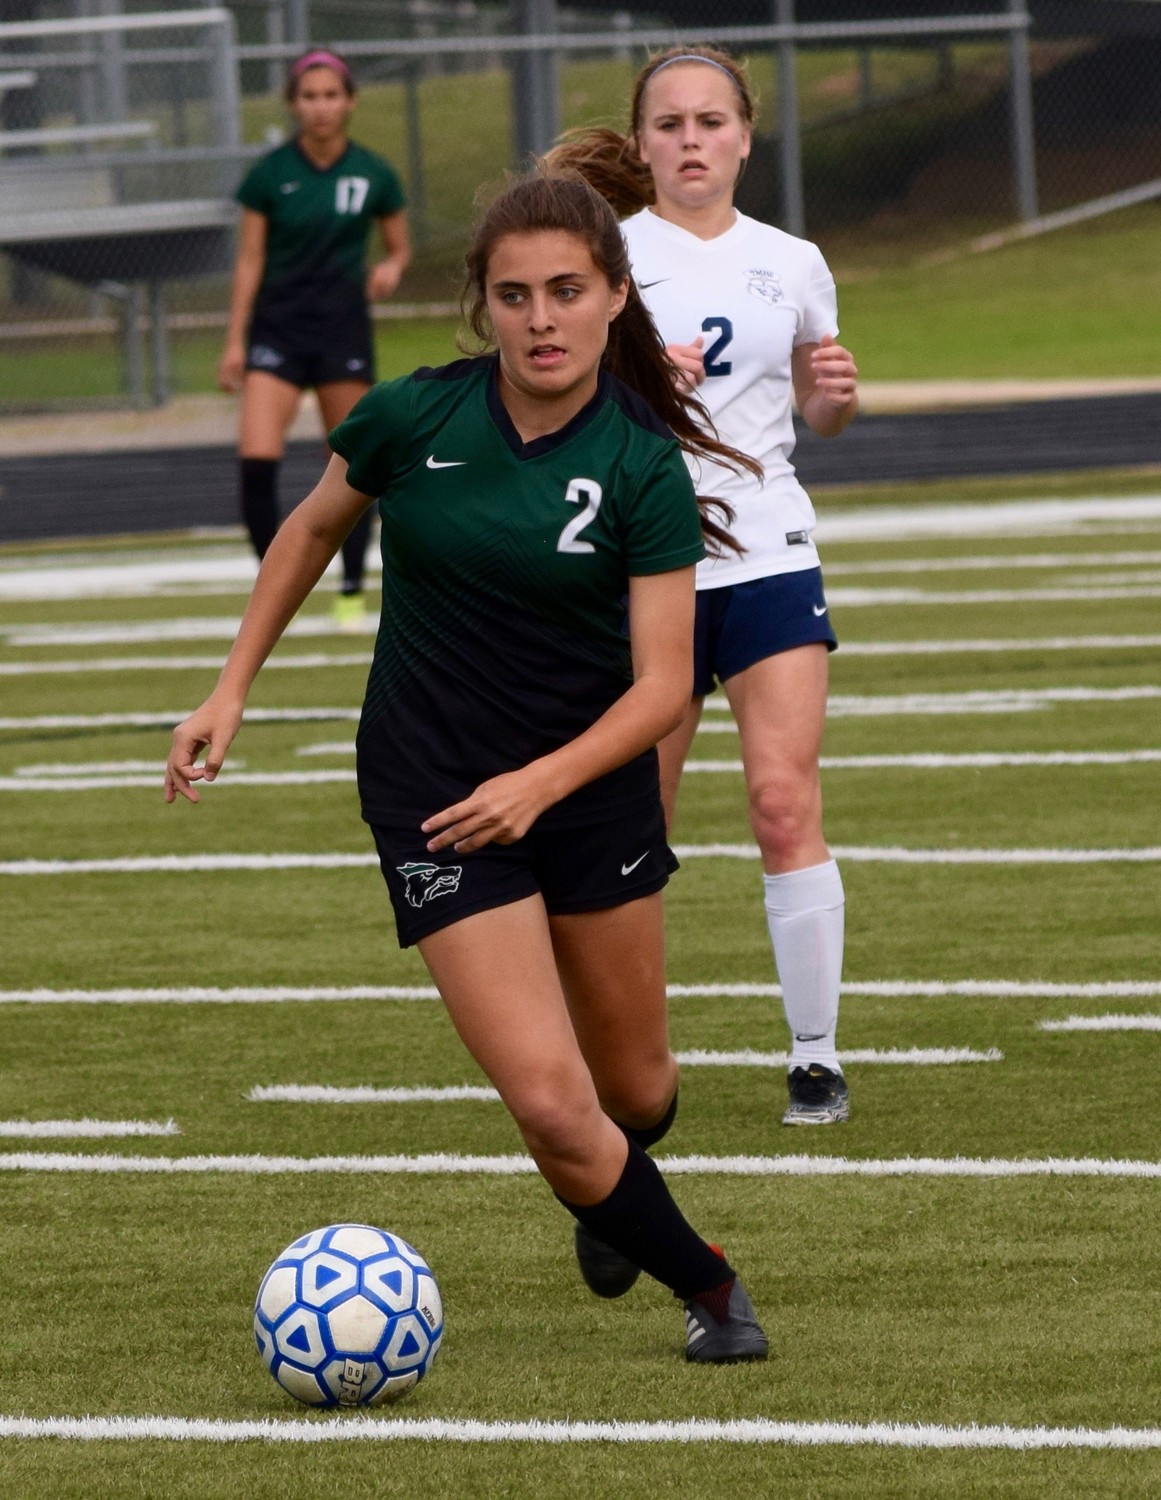 Corina Whitman and Cedar Park beat Tomball Memorial 1-0 in Bastrop on Friday to advance to the regional semifinals.